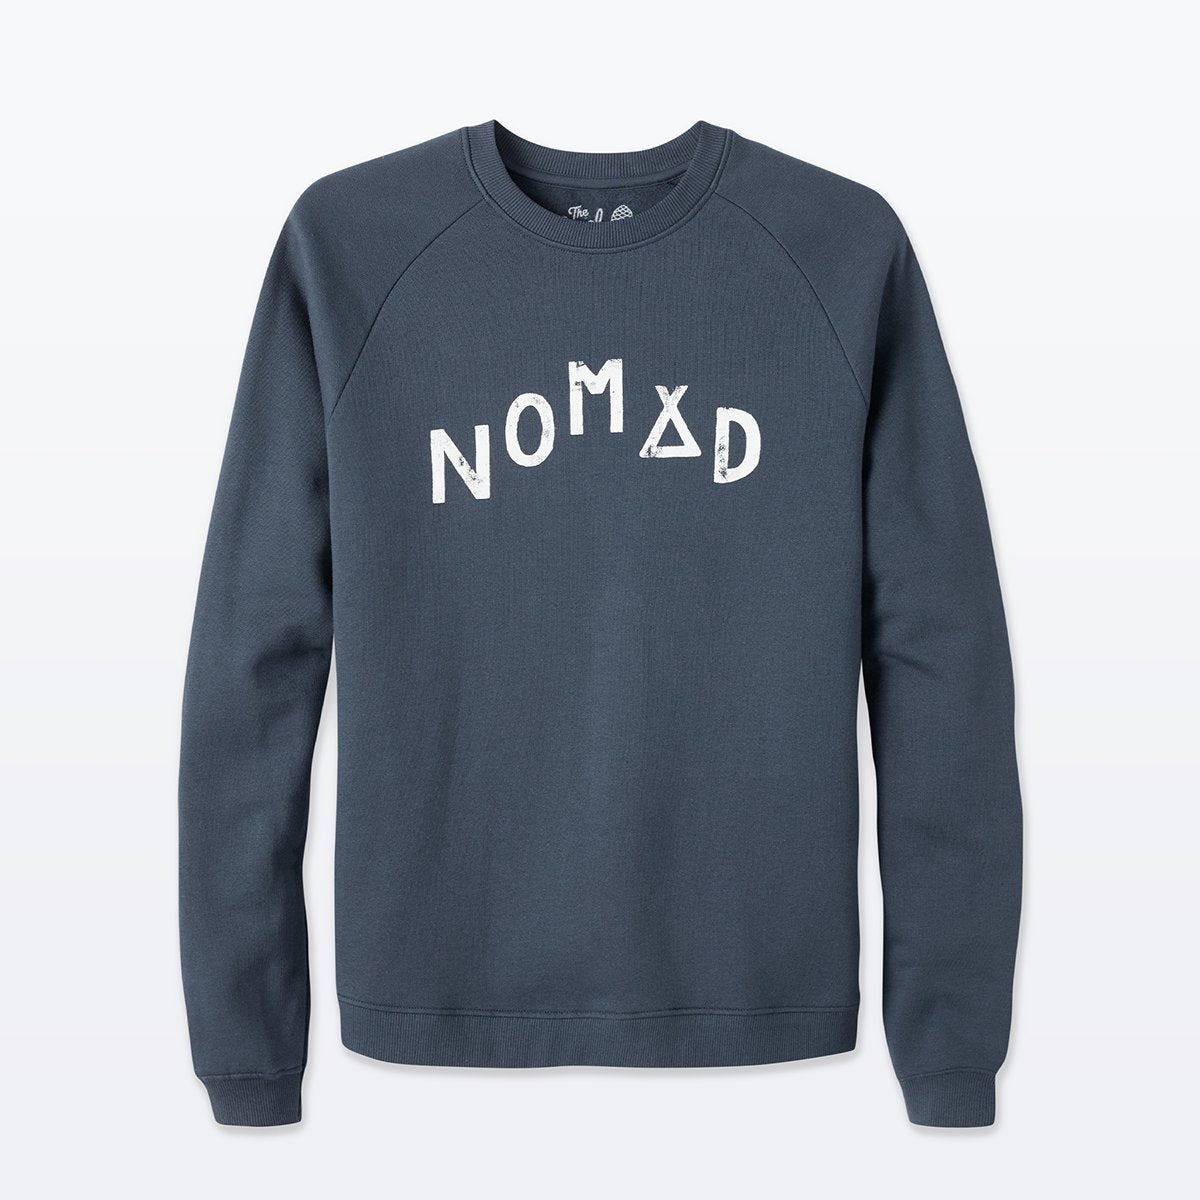 The Level Collective | Nomad Sweatshirt | Cotton Jumper | Logo Sweater | Navy